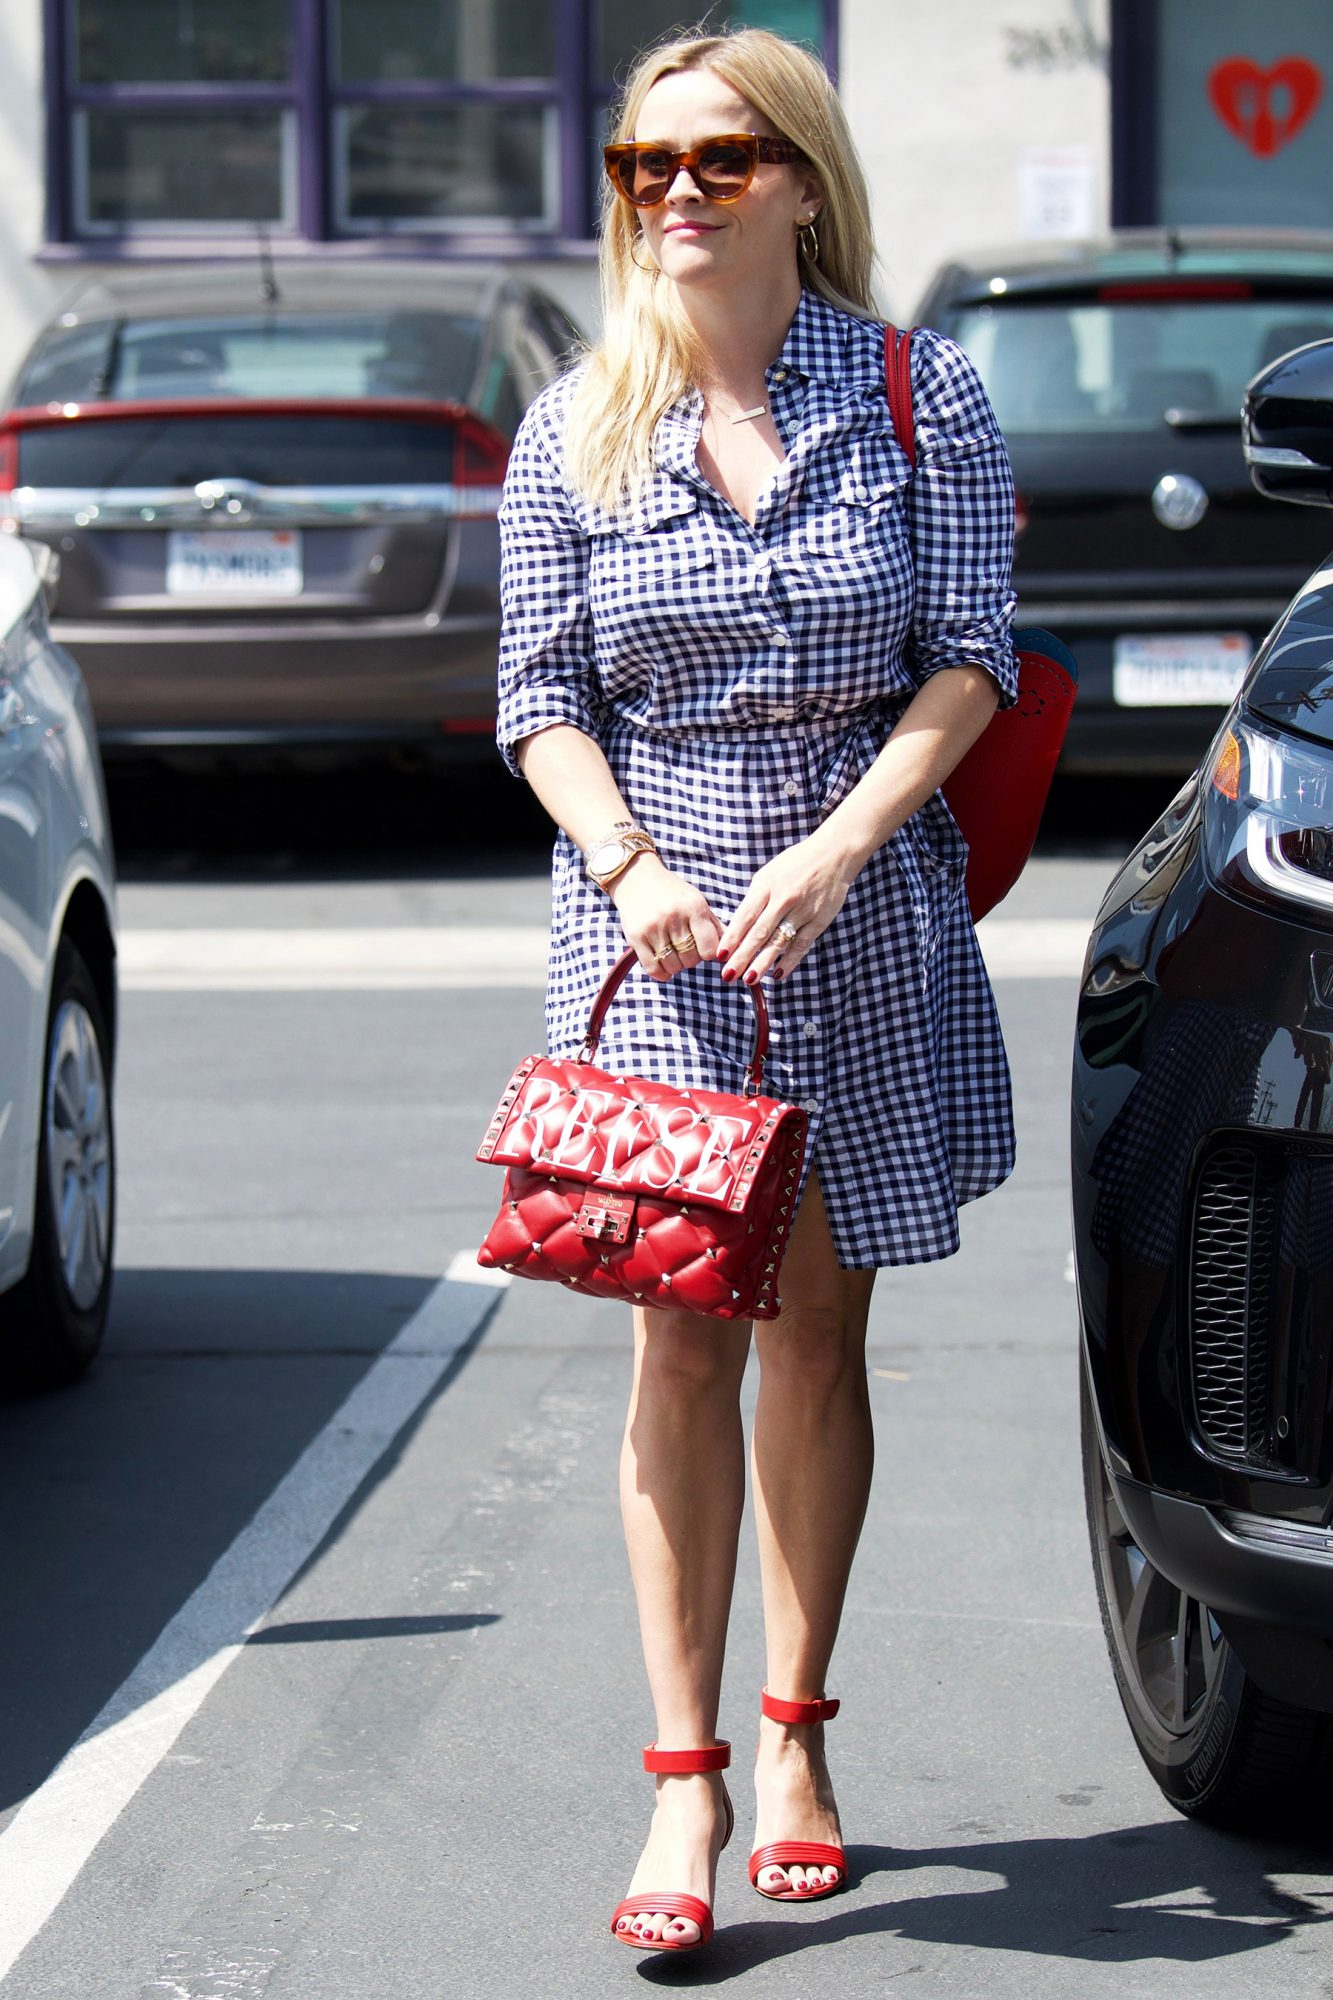 Reese Witherspoon on the way to her office.